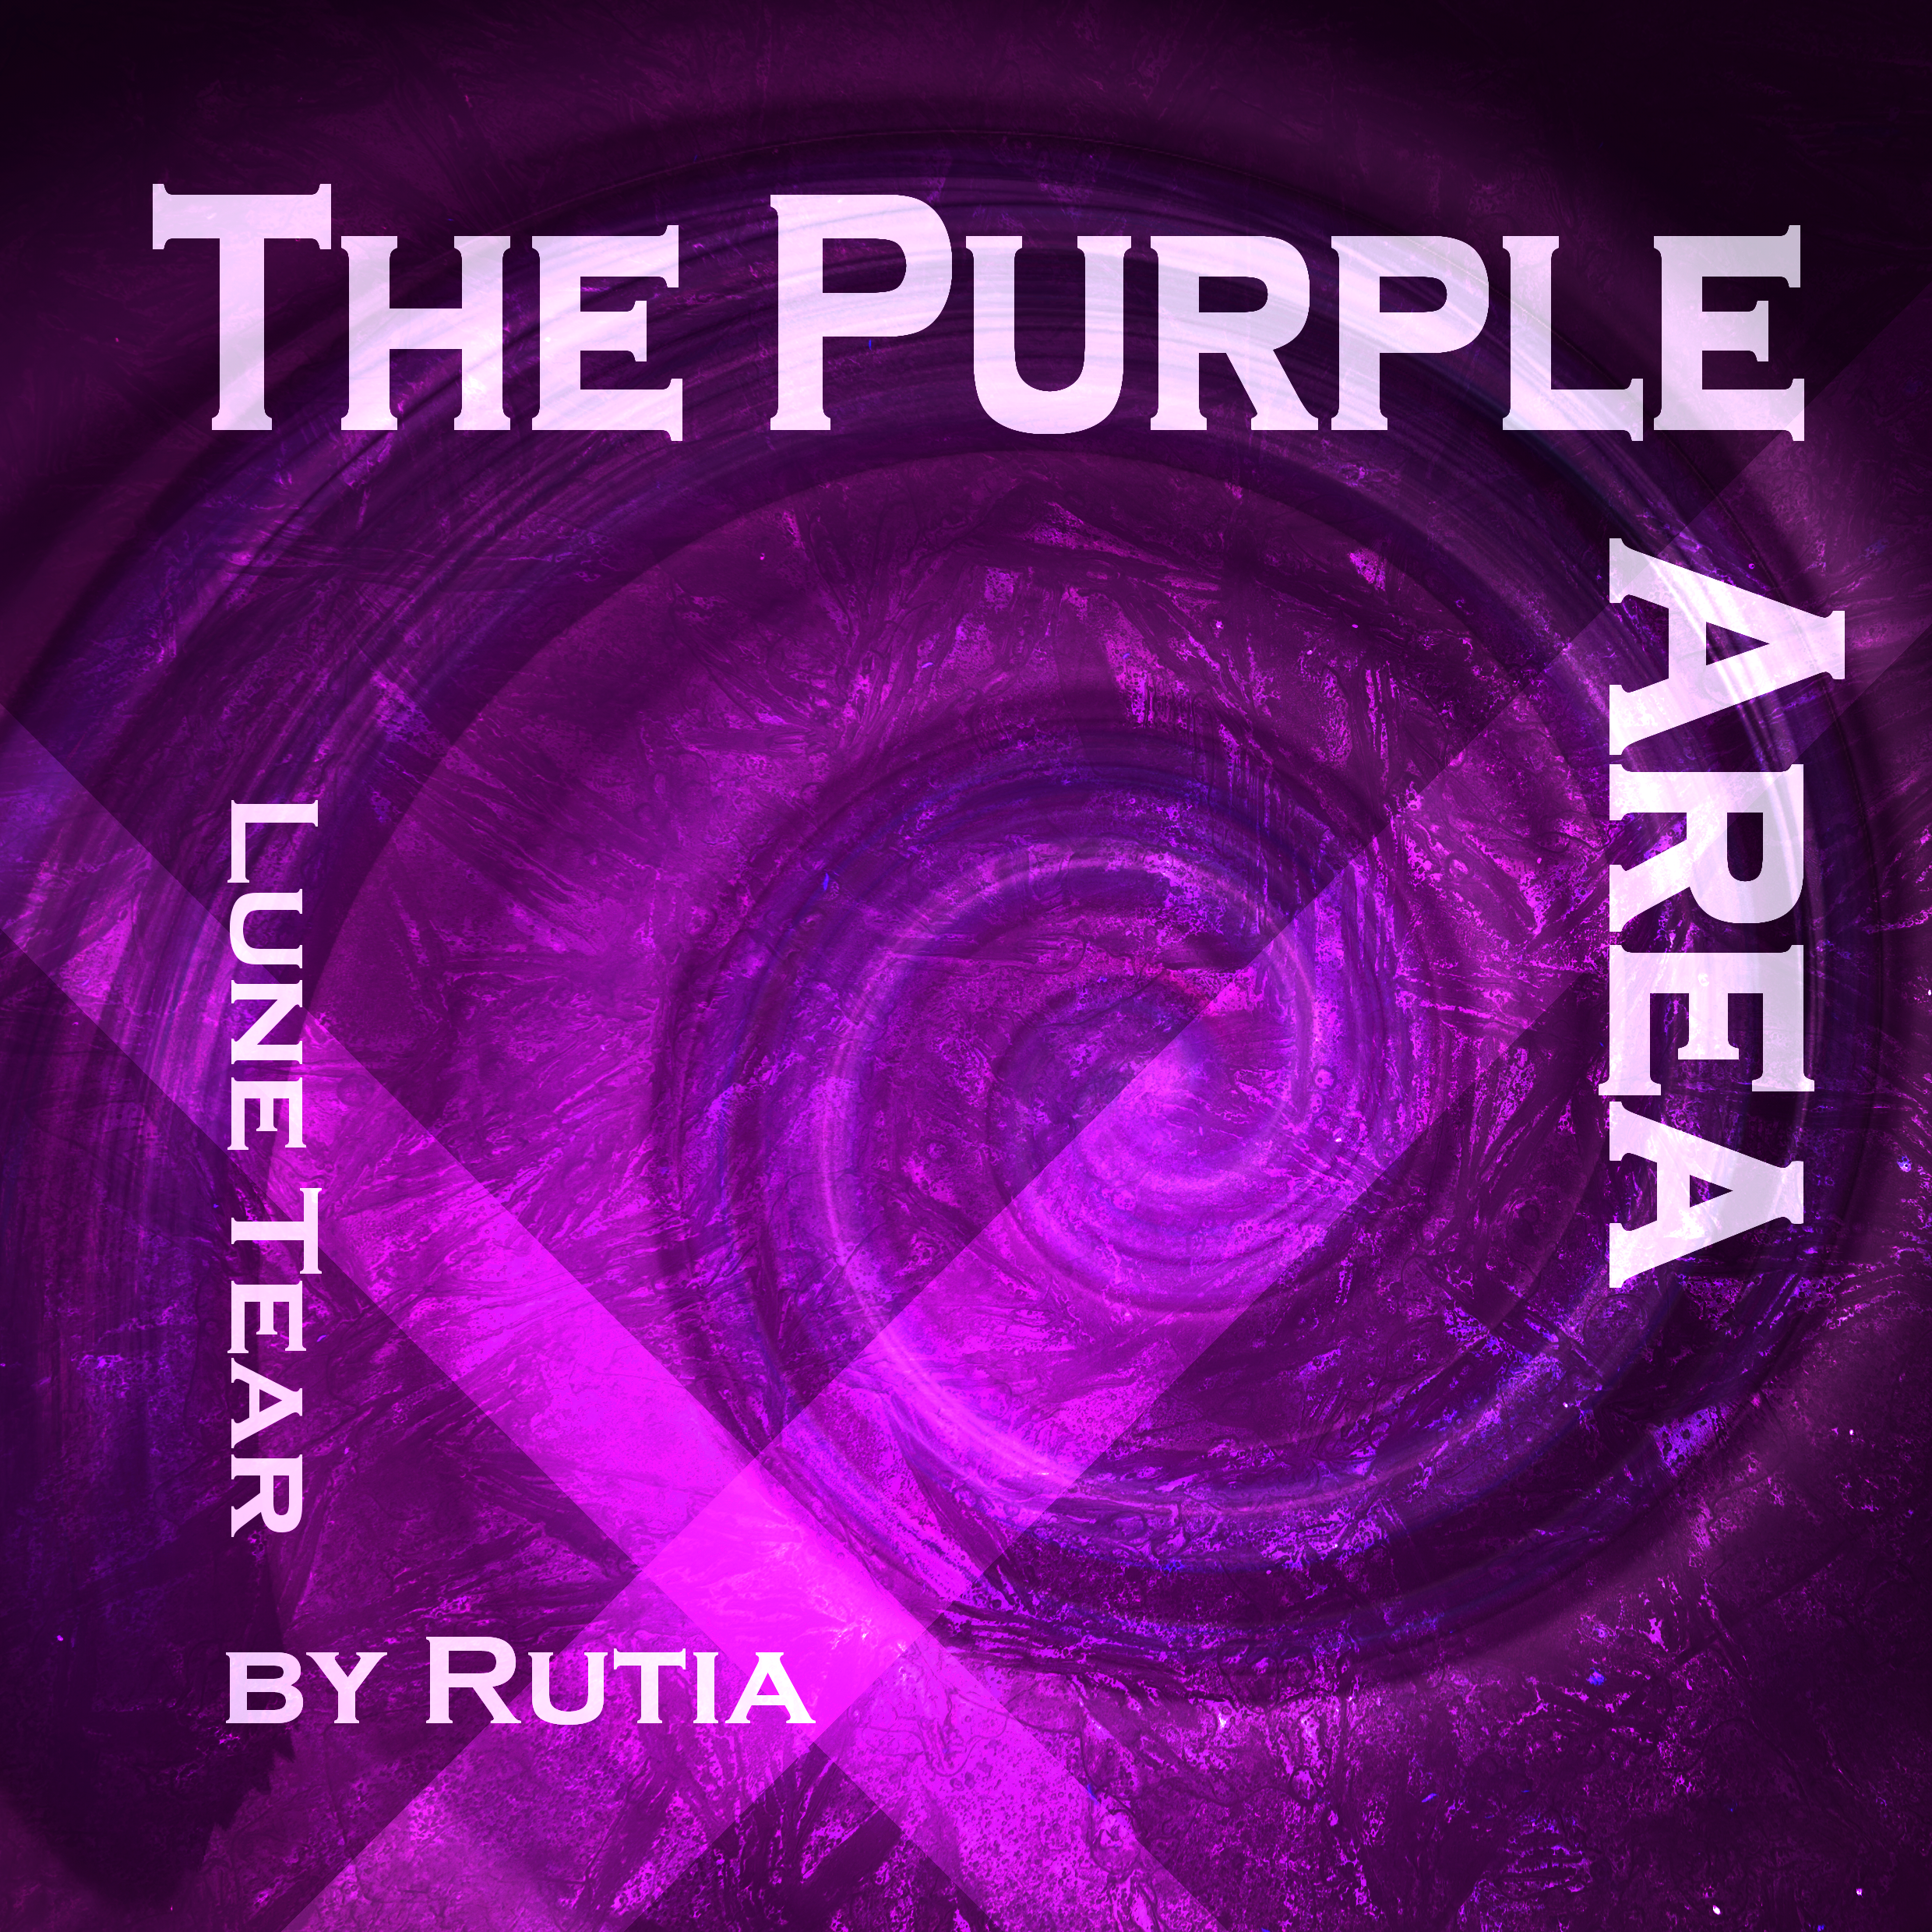 THE PURPLE AREA